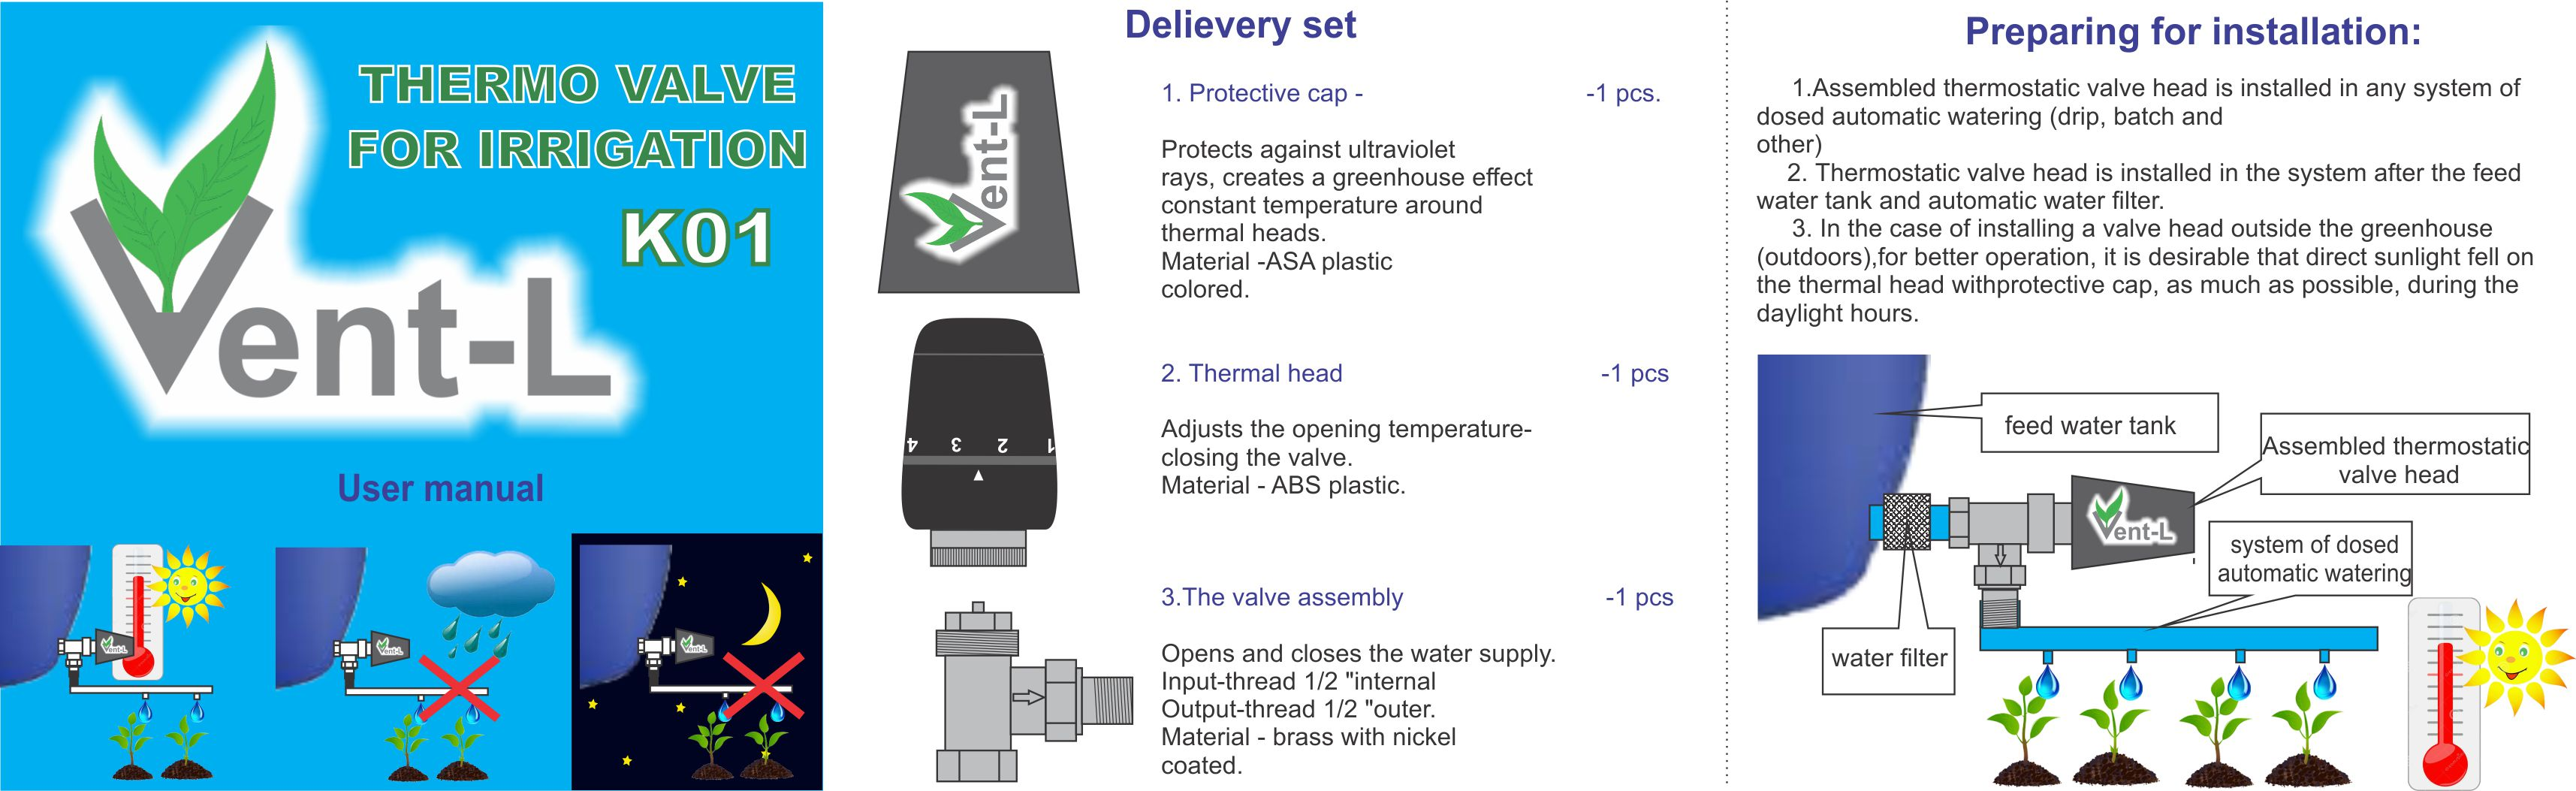 """Vent-L Thermo Valve for Irrigation K01, 1/2"""" Opening Adjustment from 50-82°F"""